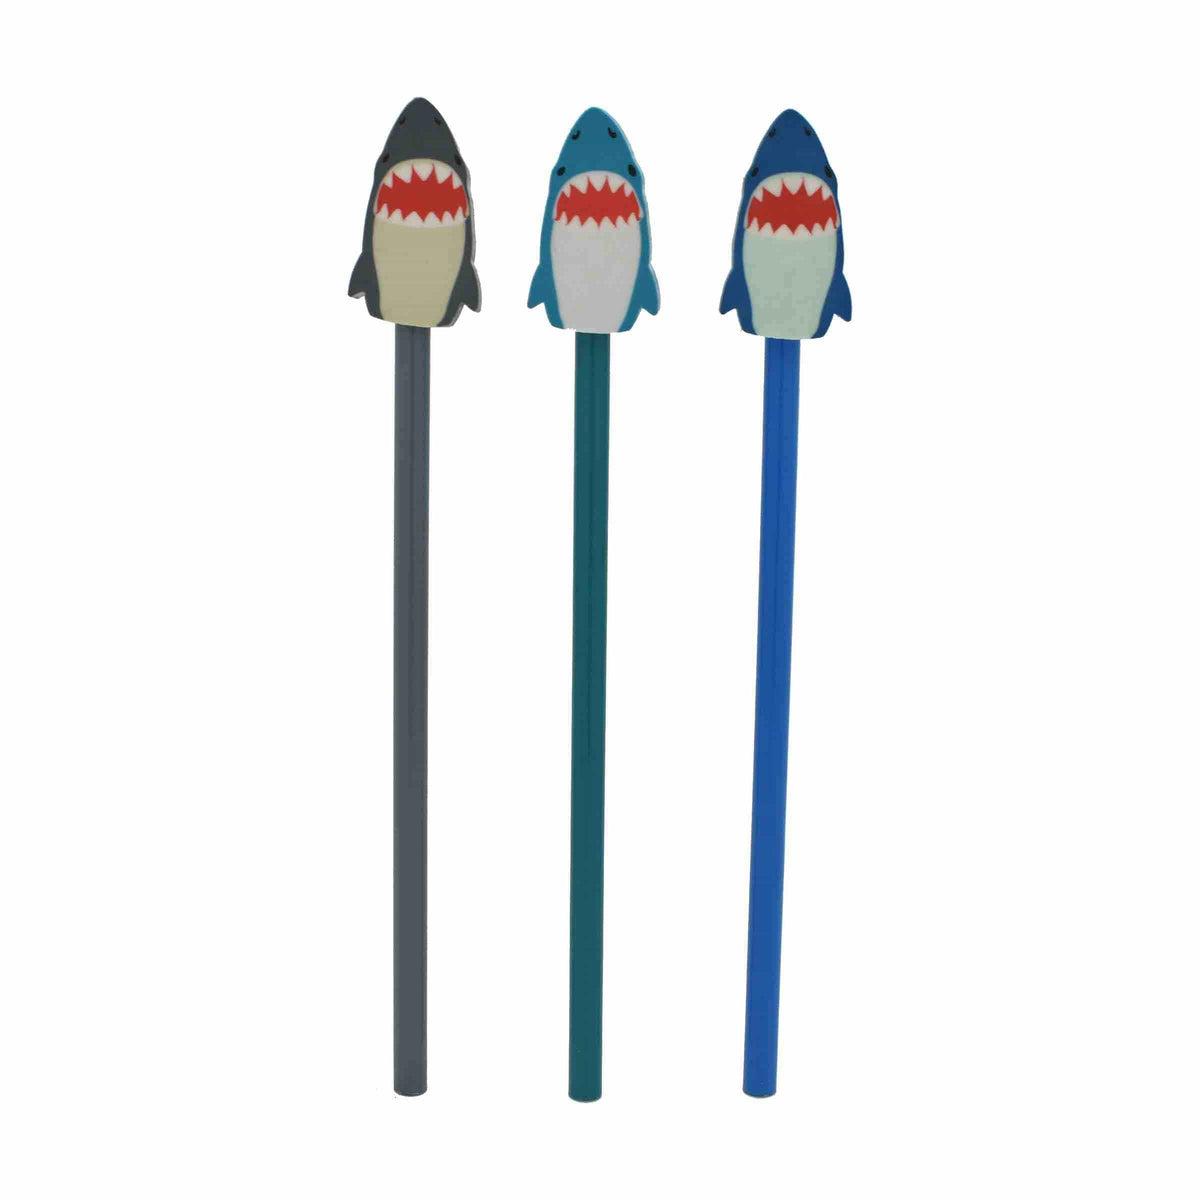 Shark Attack Eraser & Pencil Duo - Set of 3